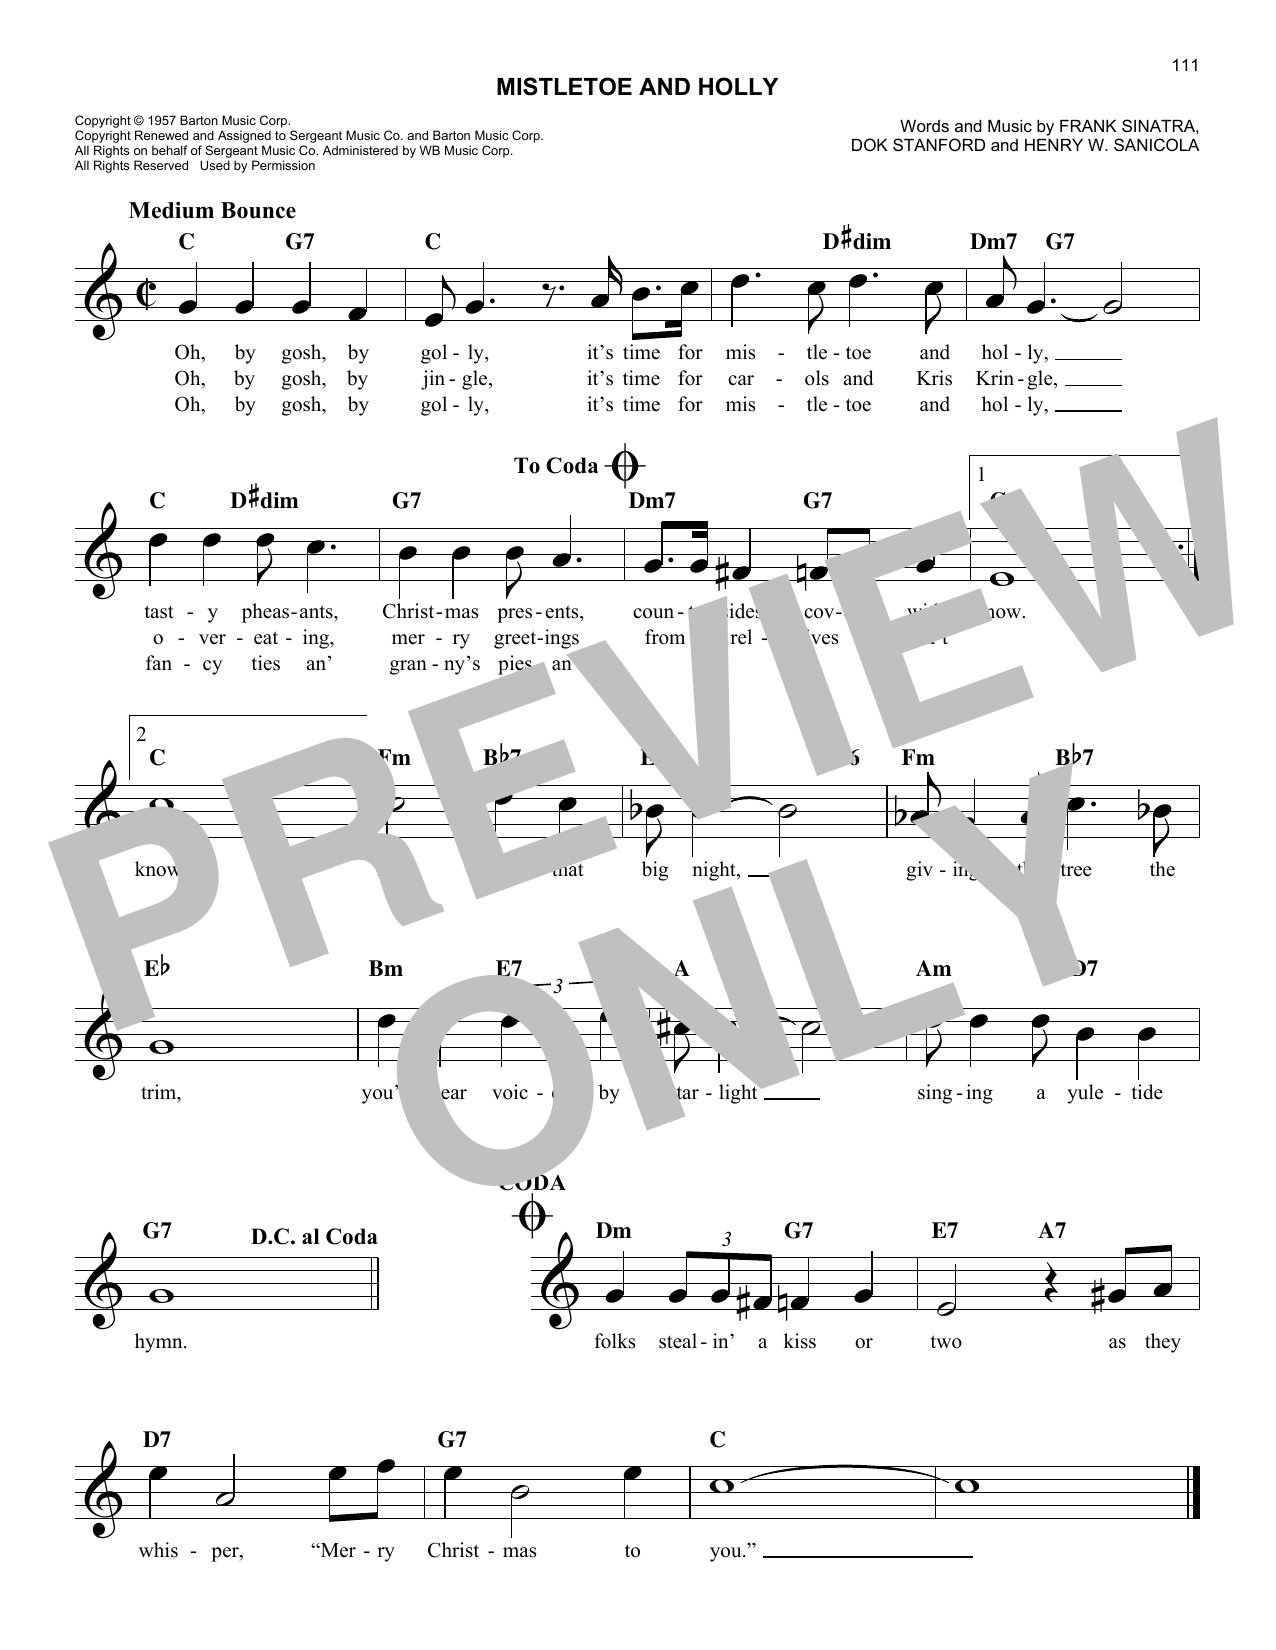 Henry W. Sanicola Mistletoe And Holly sheet music notes and chords. Download Printable PDF.